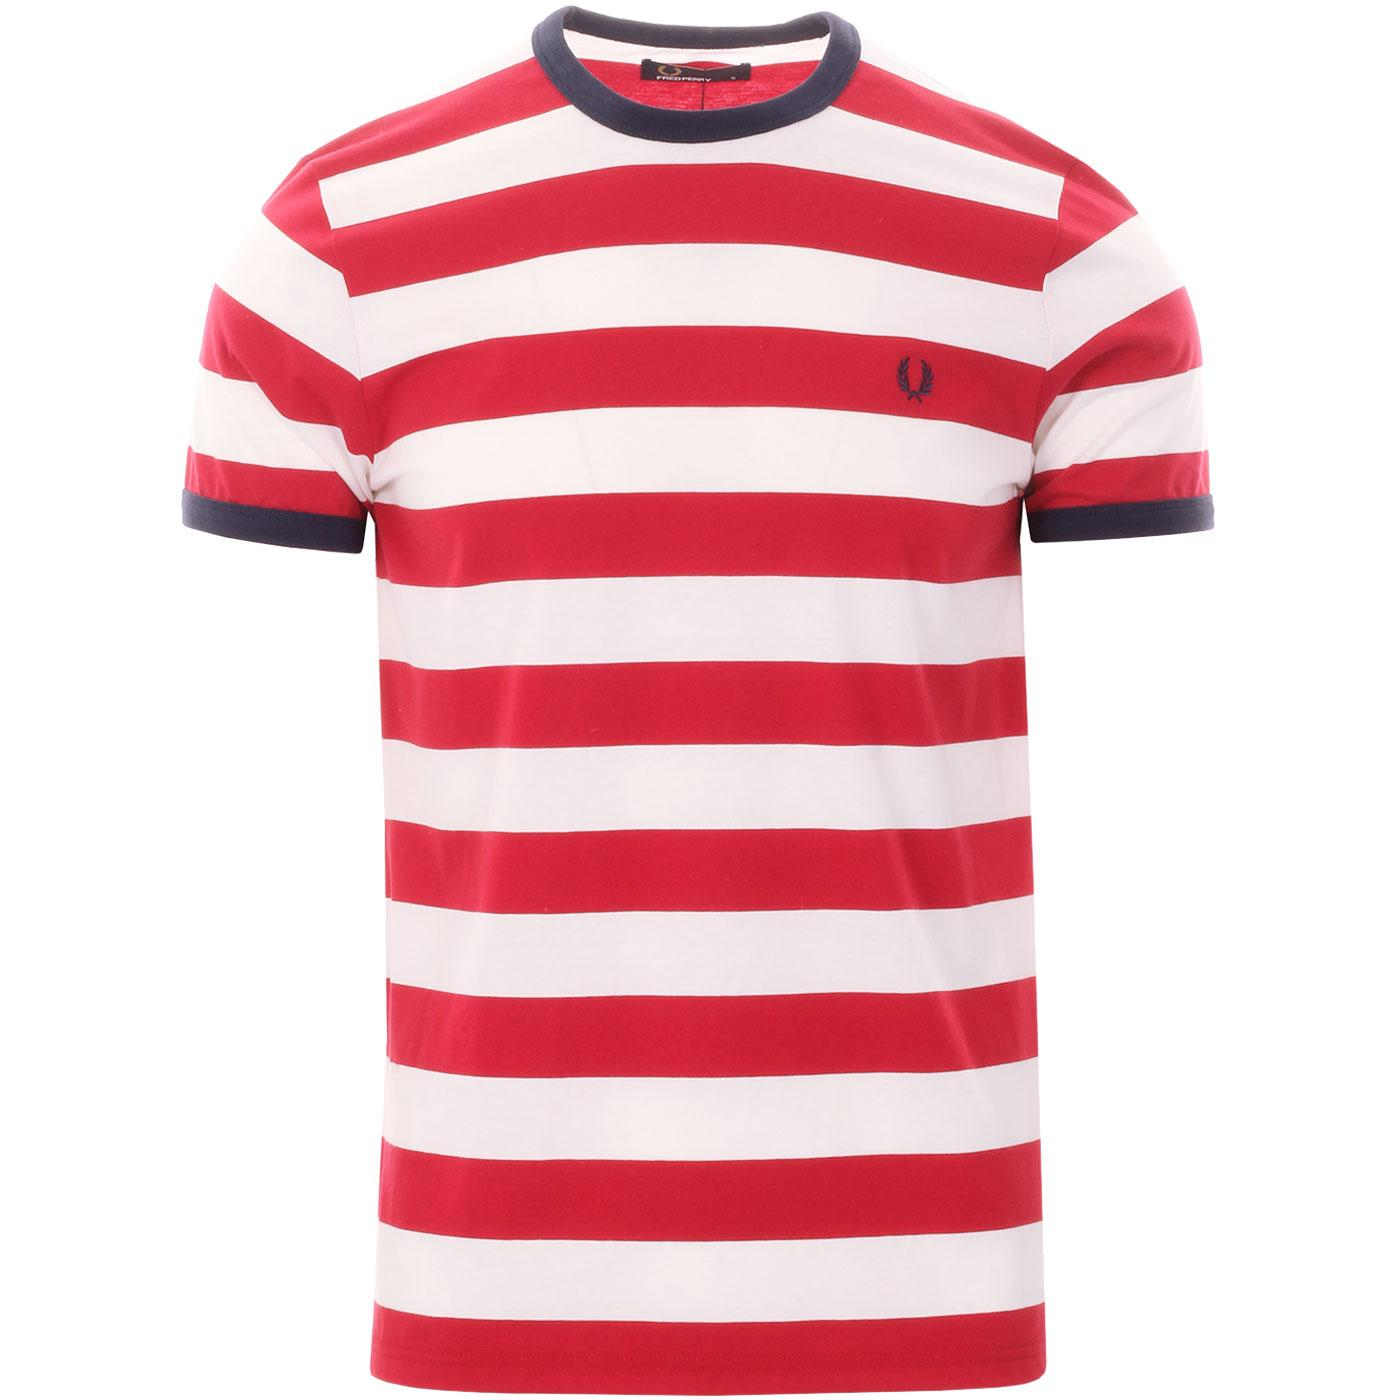 FRED PERRY Men's Retro Bold Striped Ringer T-Shirt